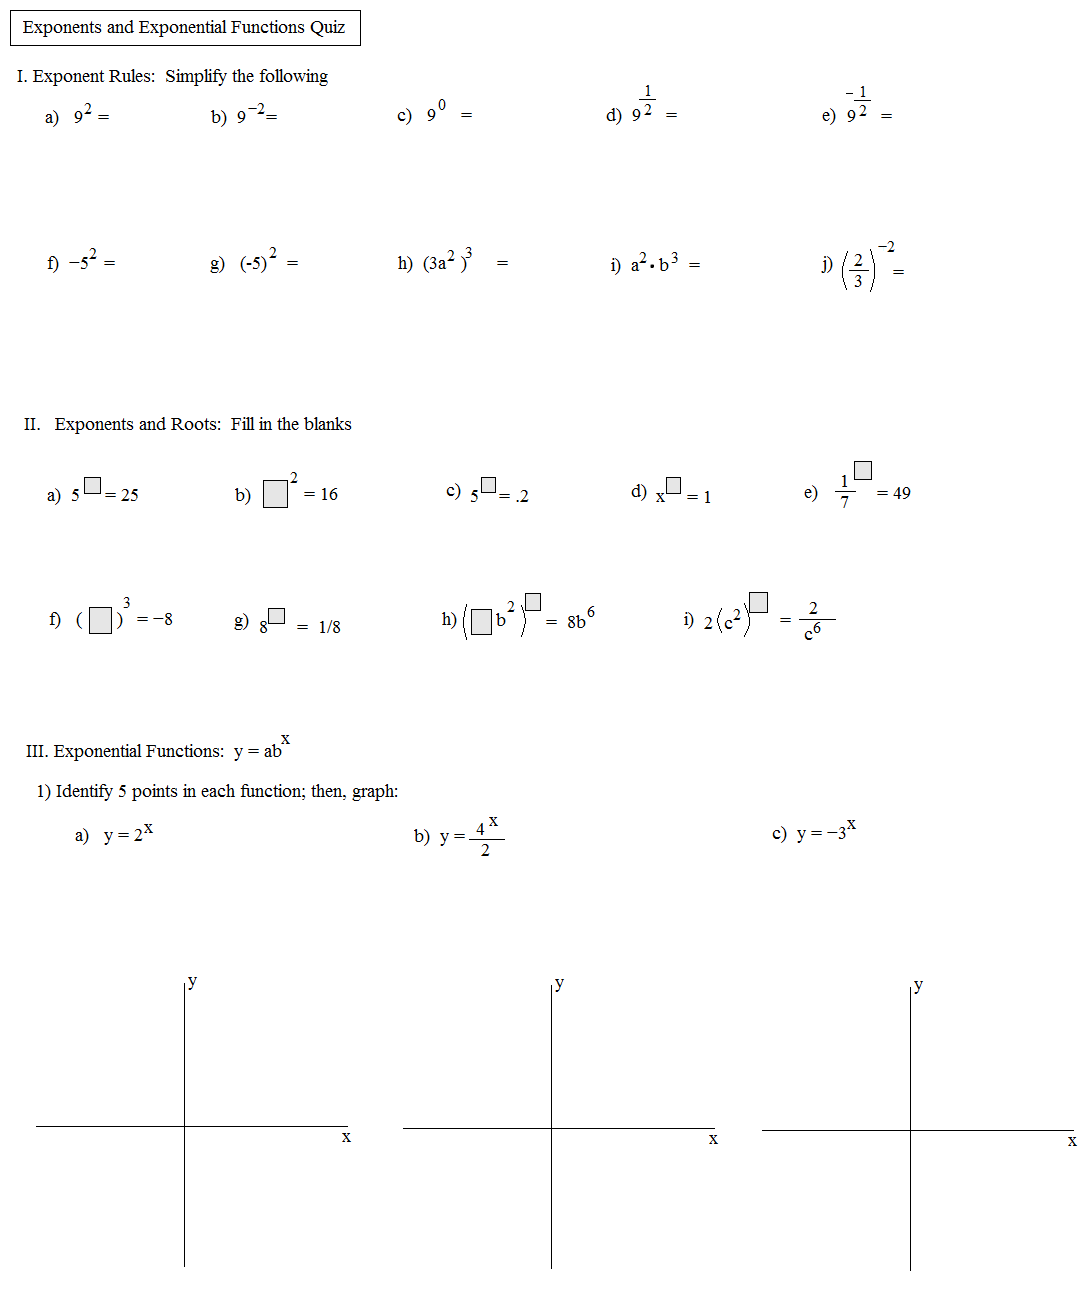 32 Worksheet A Exponential Functions